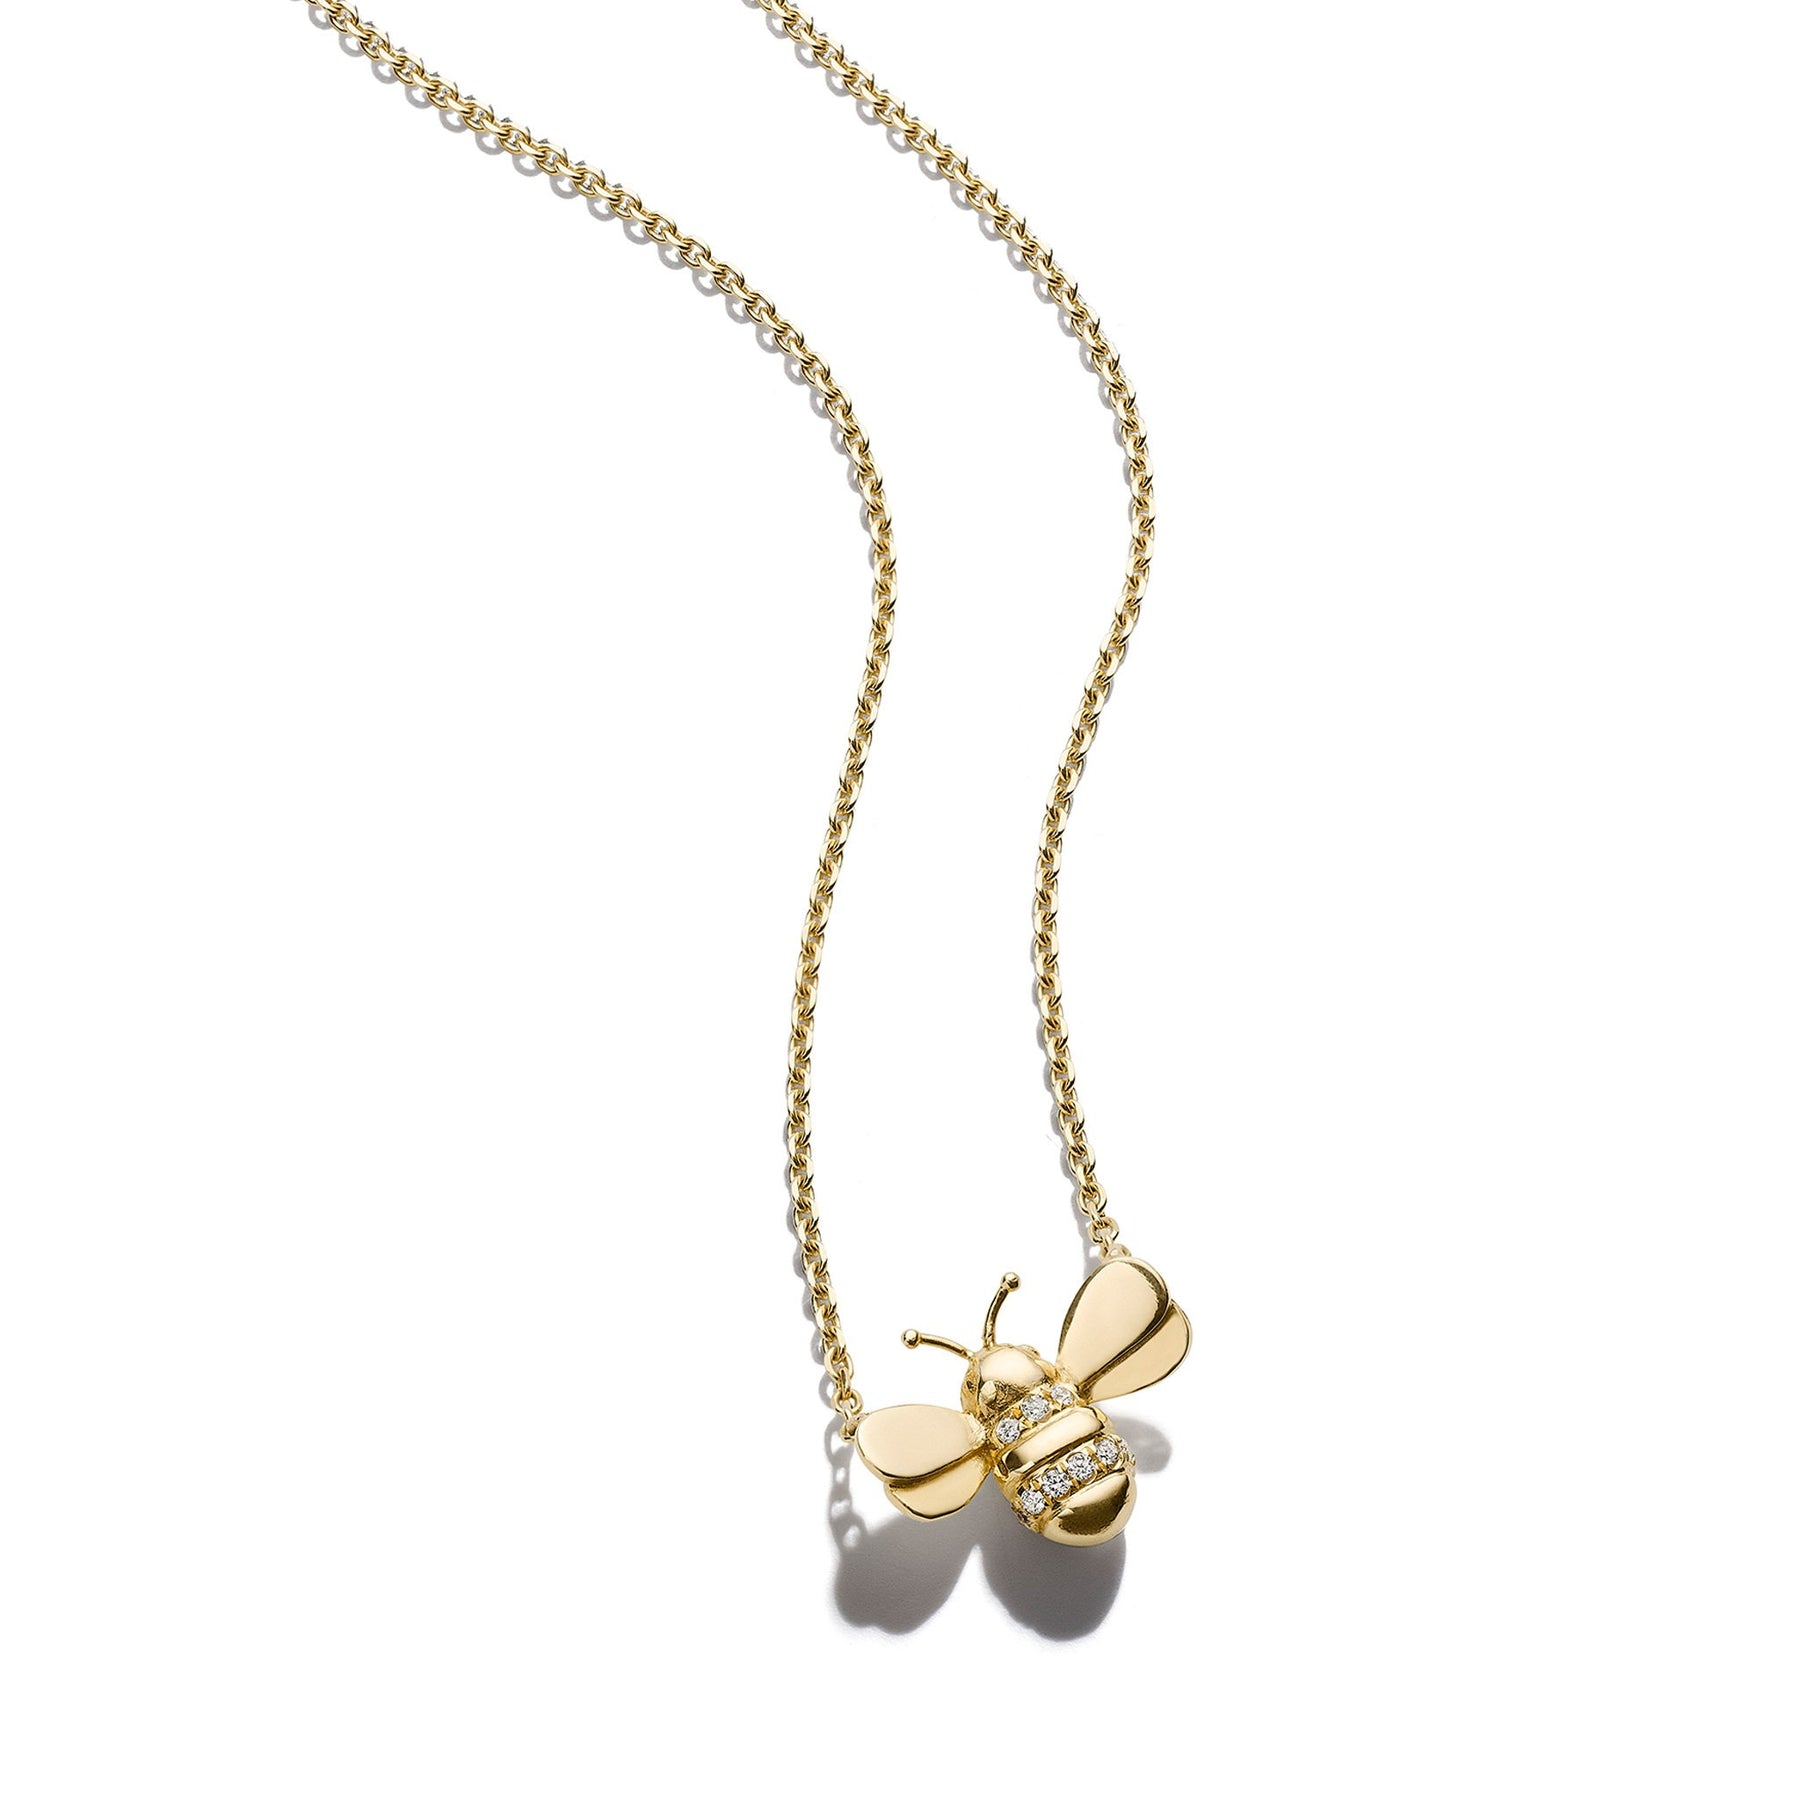 Mimi-So-Wonderland-Bumble-Bee-Necklace_18k Yellow Gold